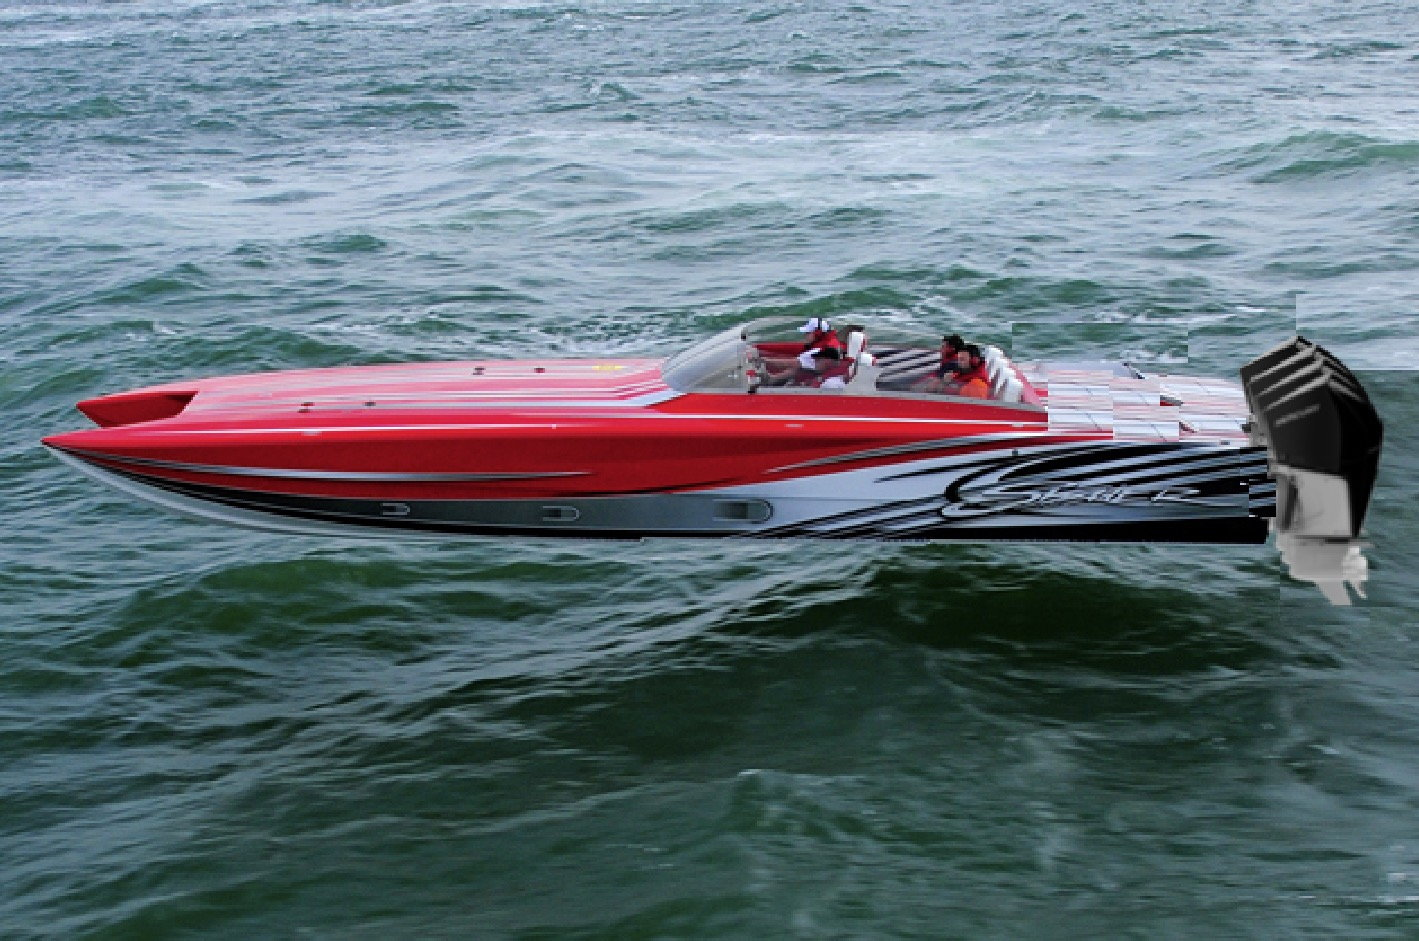 V8 Mercury Outboards - Page 3 - Offshoreonly com